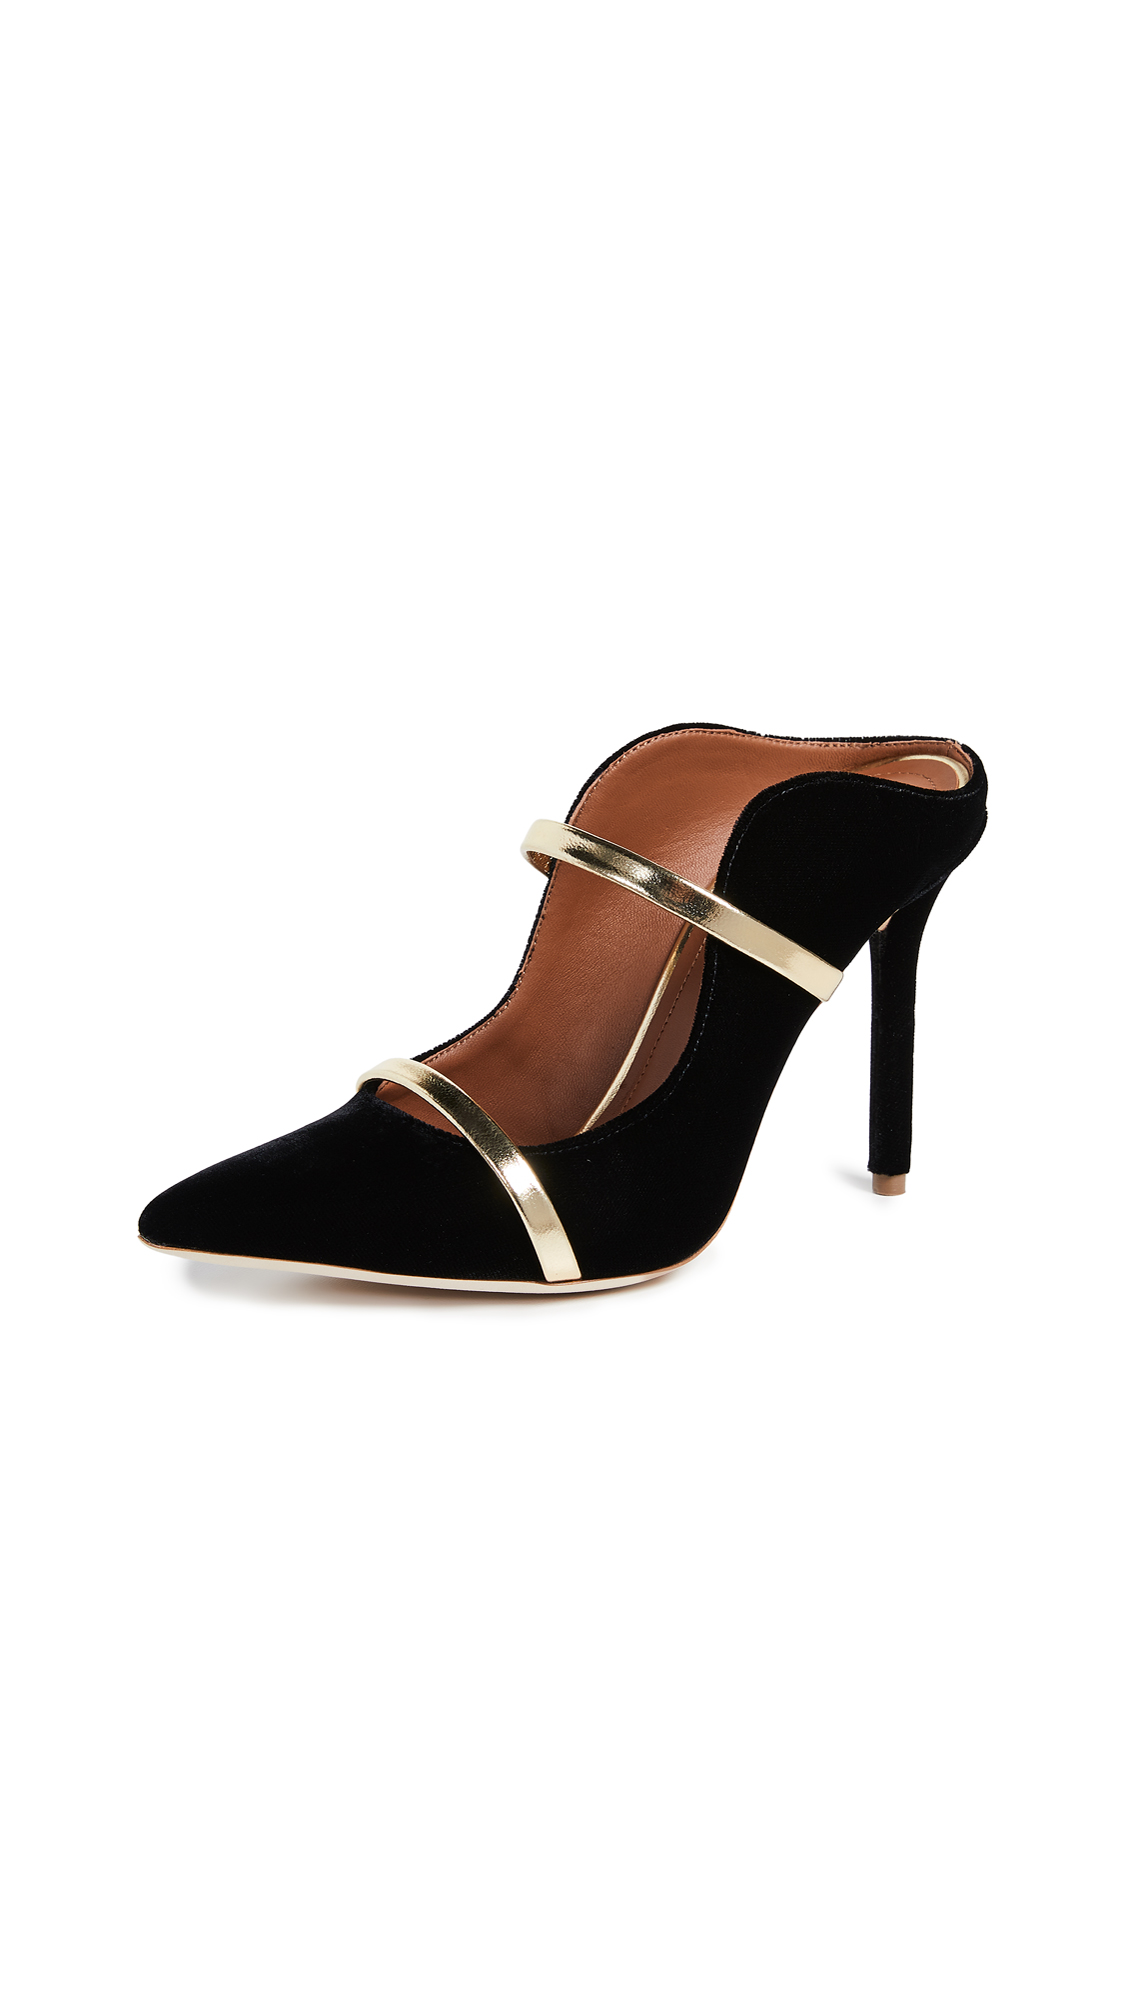 Malone Souliers by Roy Luwolt Maureen Mules - Black/Gold